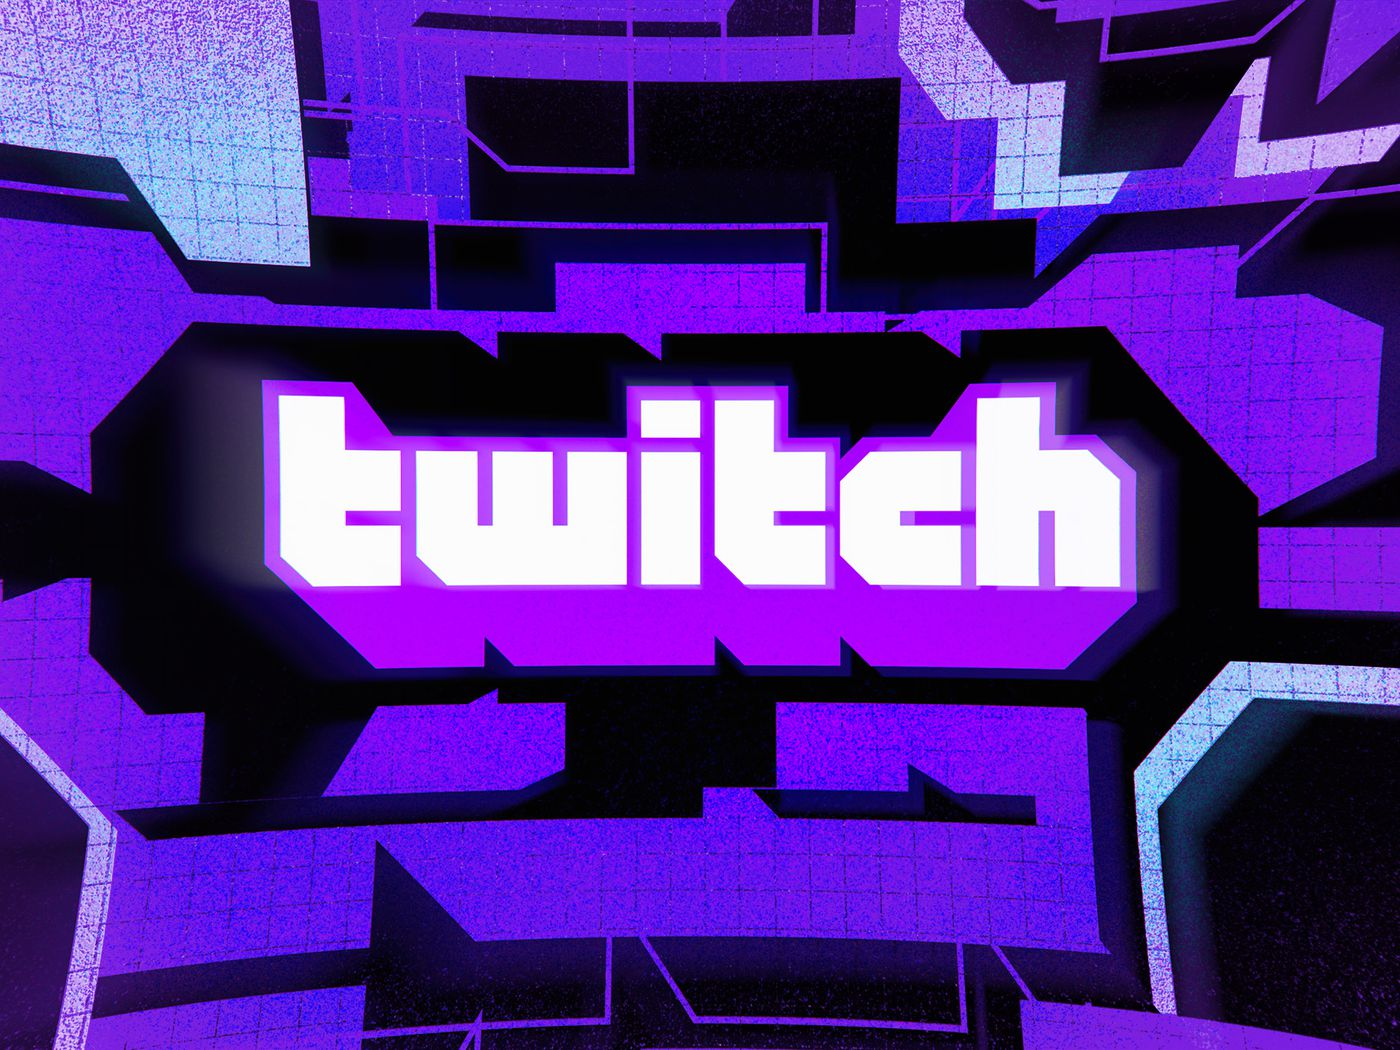 Twitch is testing mid-roll ads that streamers can't control - The Verge